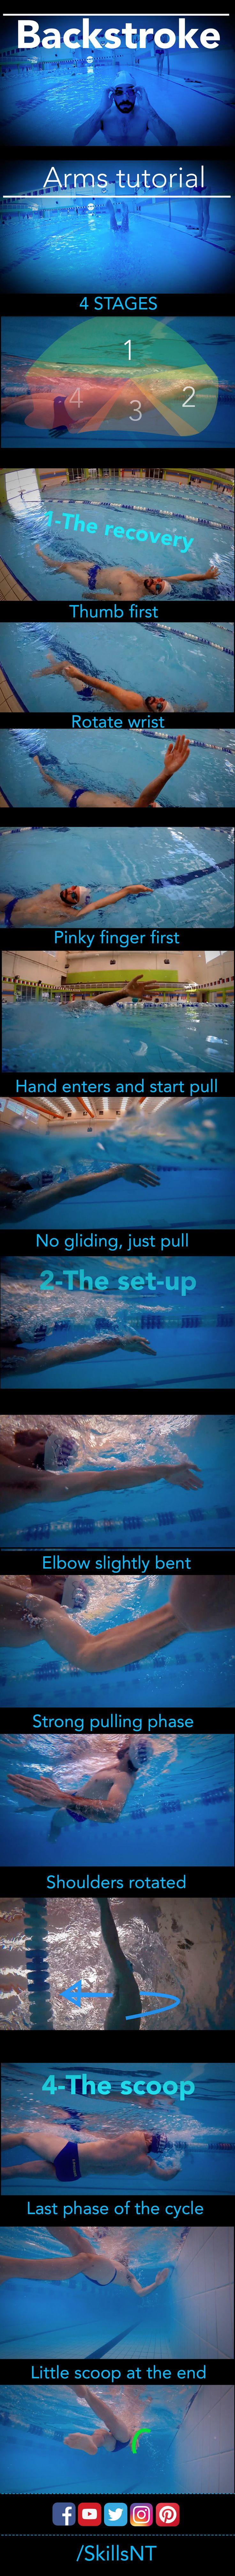 Backstroke swimming tutorial technique